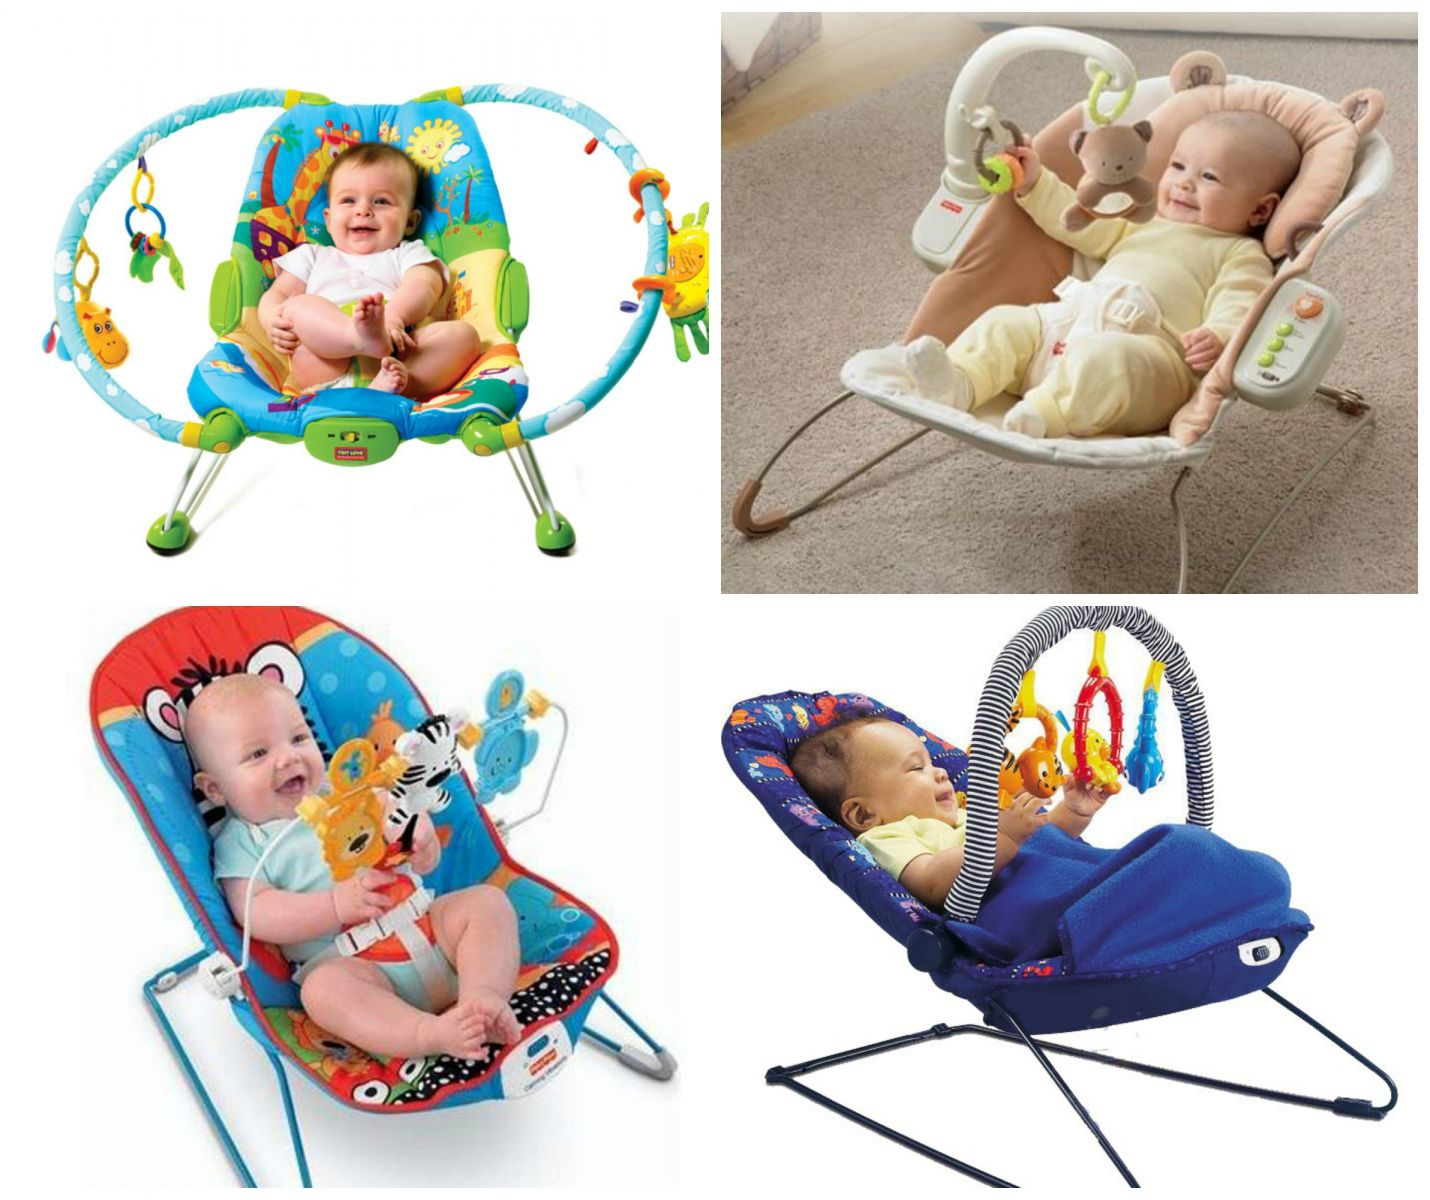 Toys for a month old baby. Armchairs